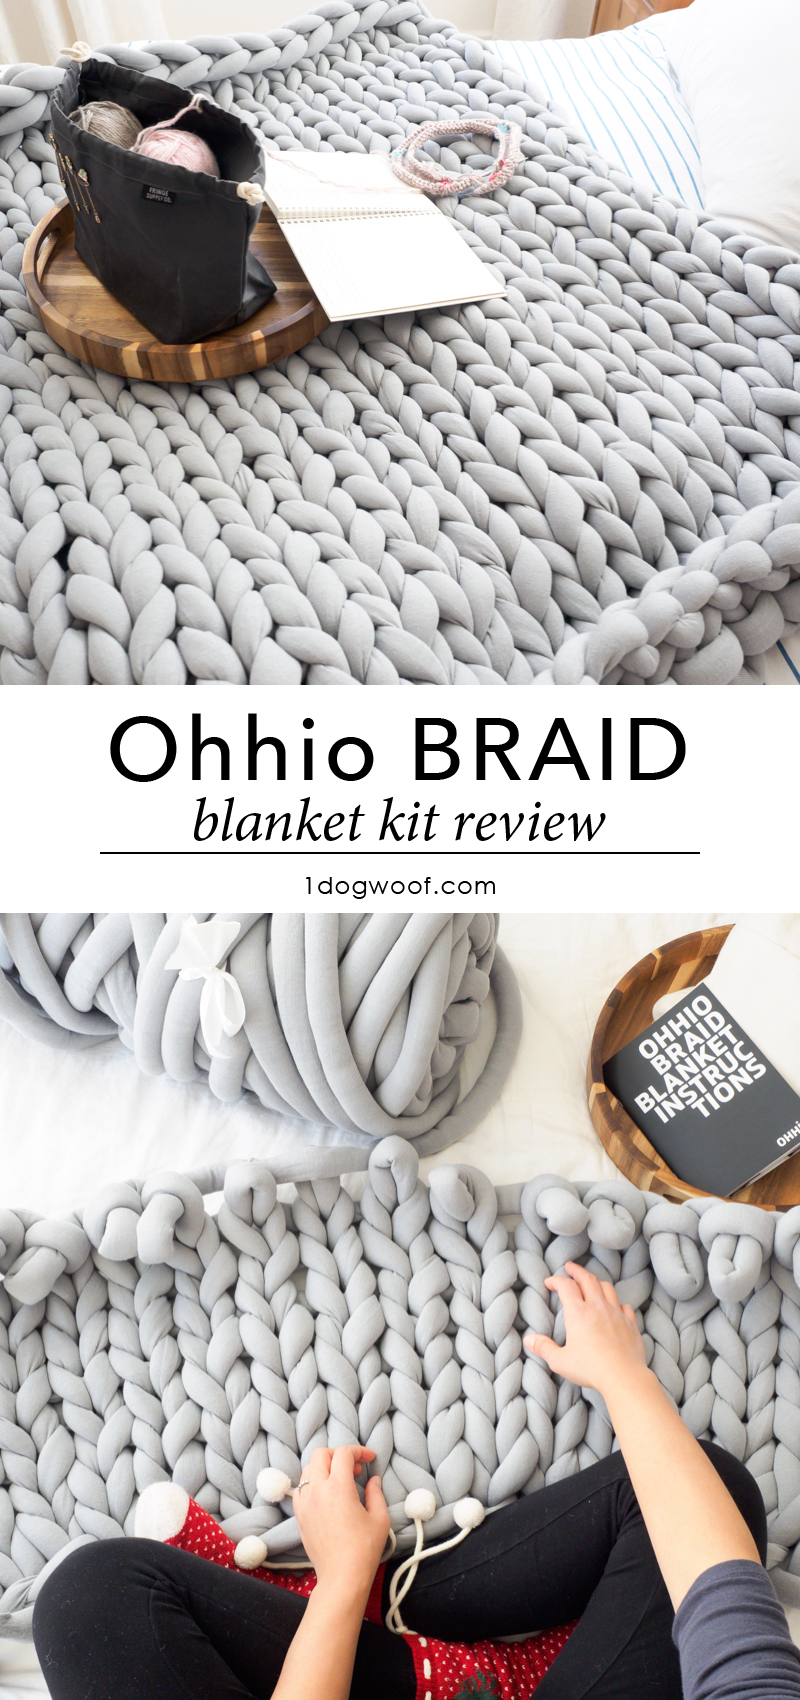 Here's my review of the Ohhio Braid Blanket DIY Kit - why I love it, and what to watch out for. | 1dogwoof.com